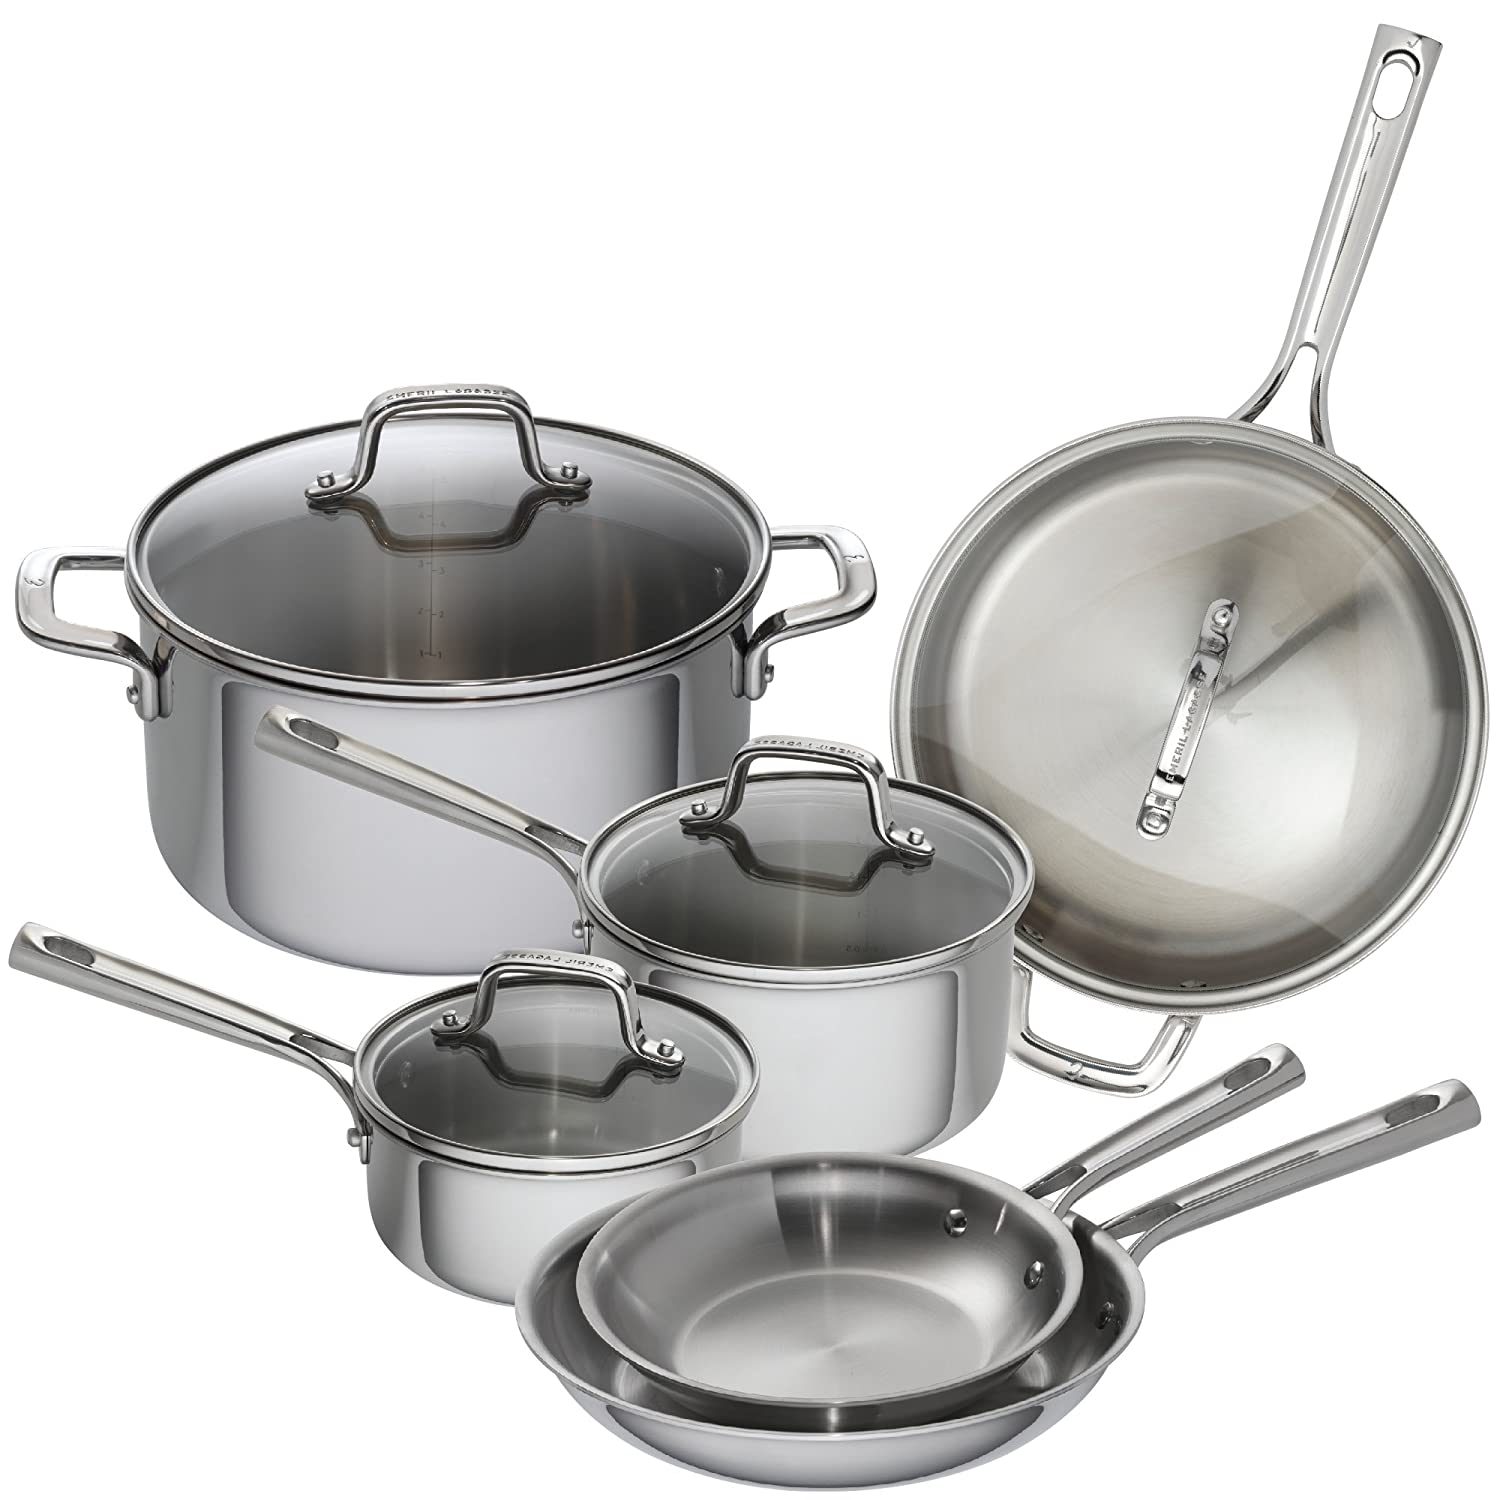 Emeril Lagasse 62851 Tri-Ply Stainless Steel Fry Pan Silver 8 8